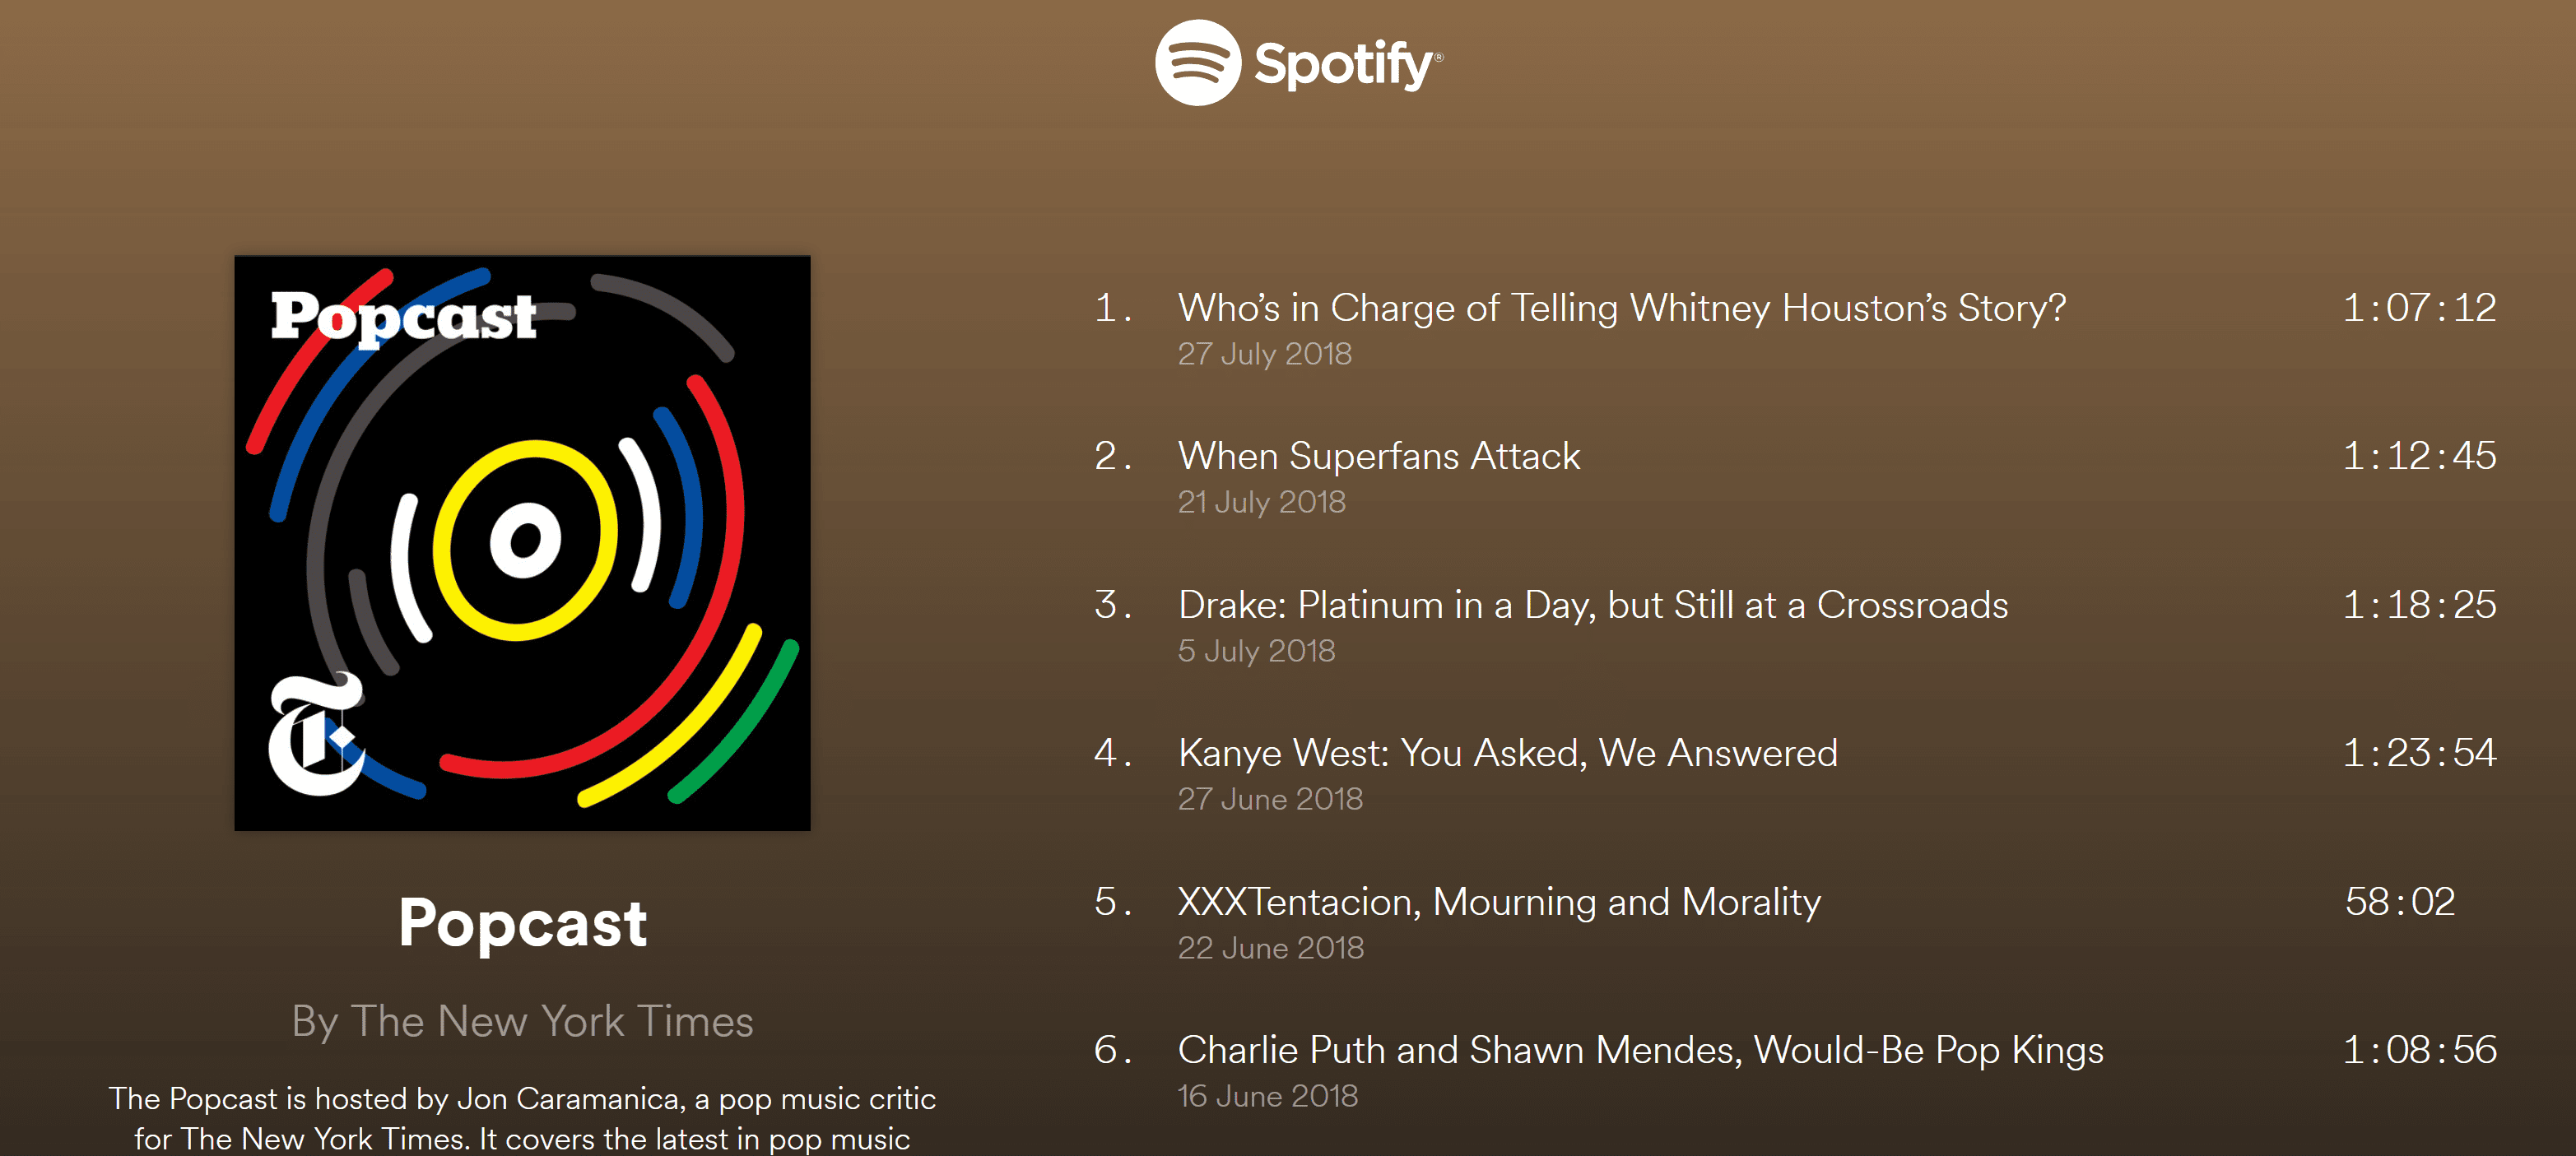 Screenshot of Spotify page for Popcast podcast